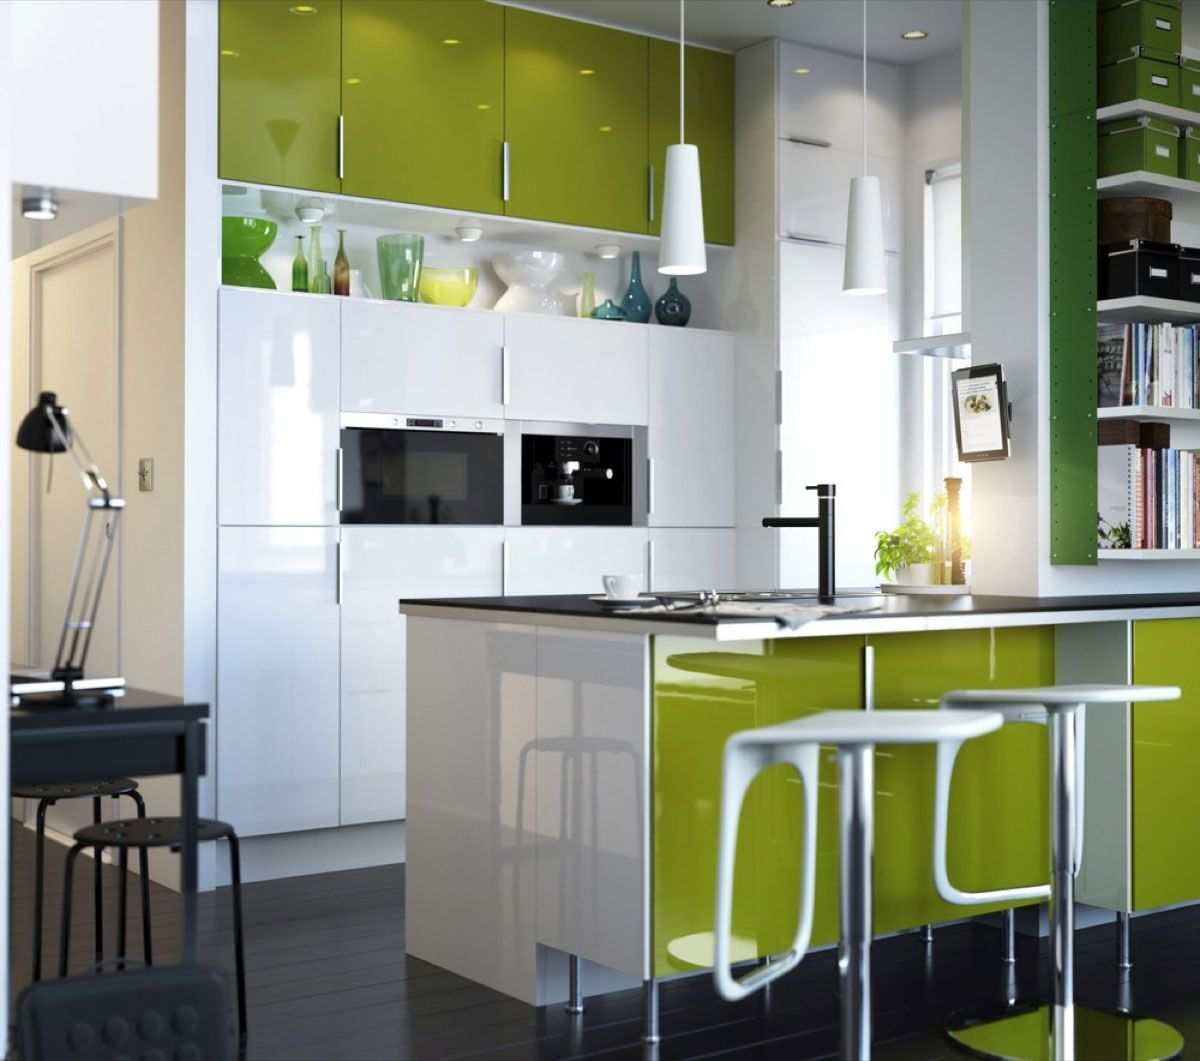 Green Kitchen Ikea: Taupe Green Kitchens - Google Search